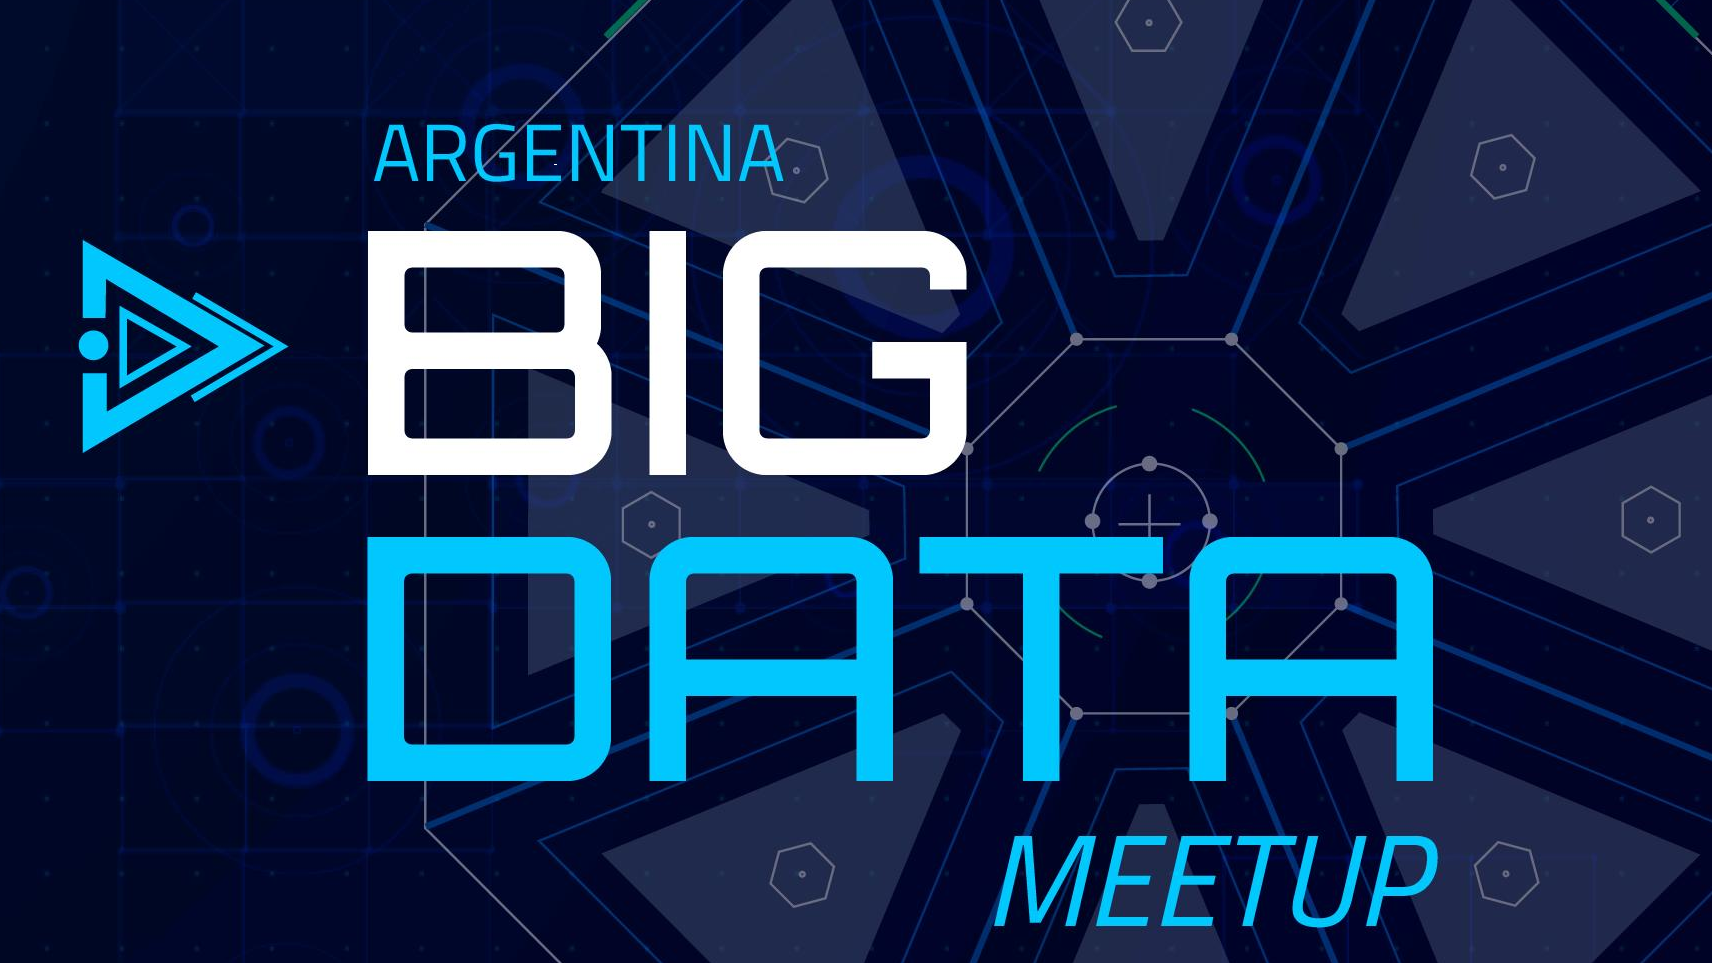 Argentina Big Data Meetup